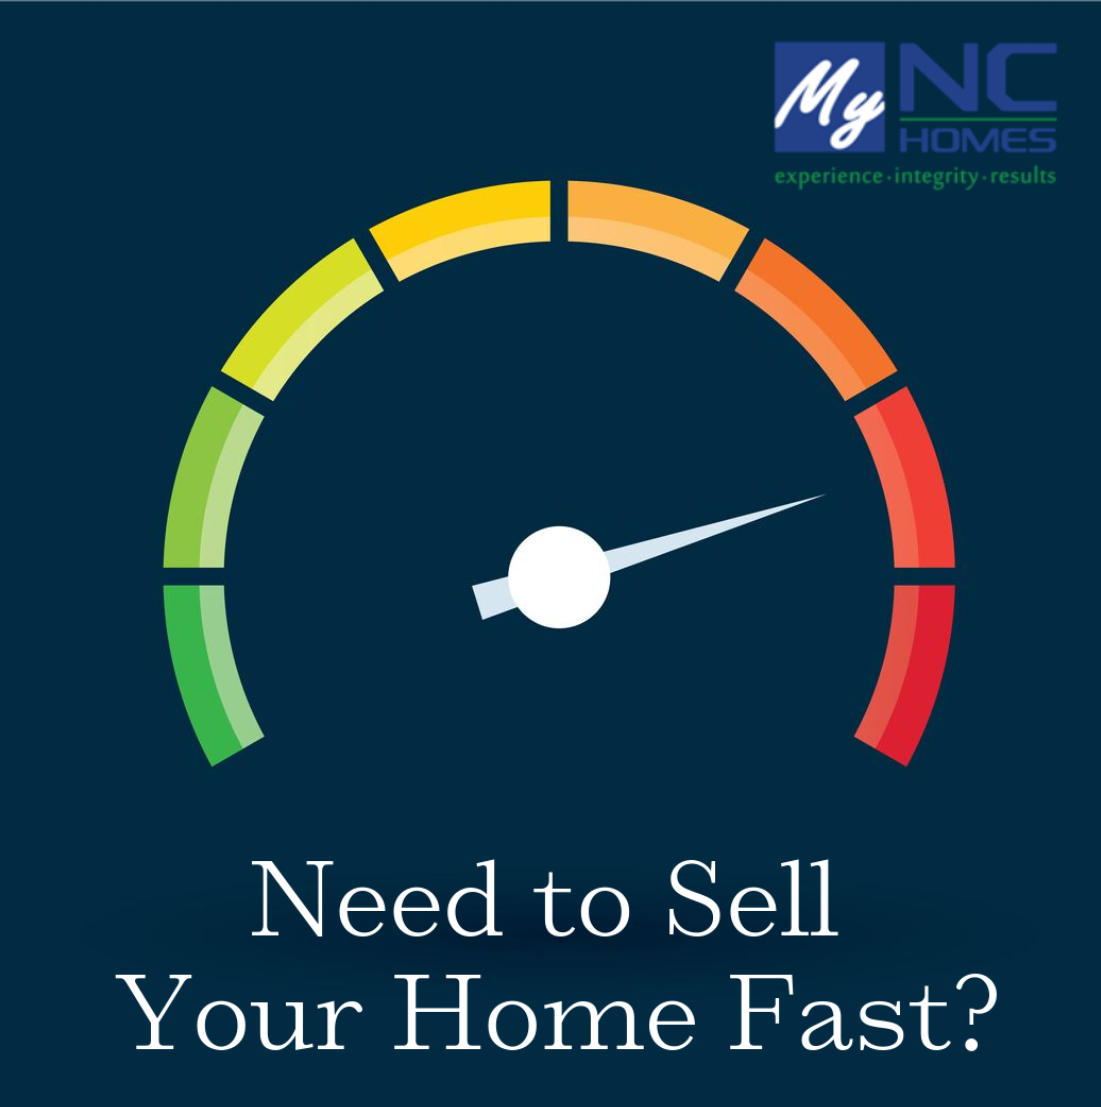 Sell Your Home Fast with My NC Homes